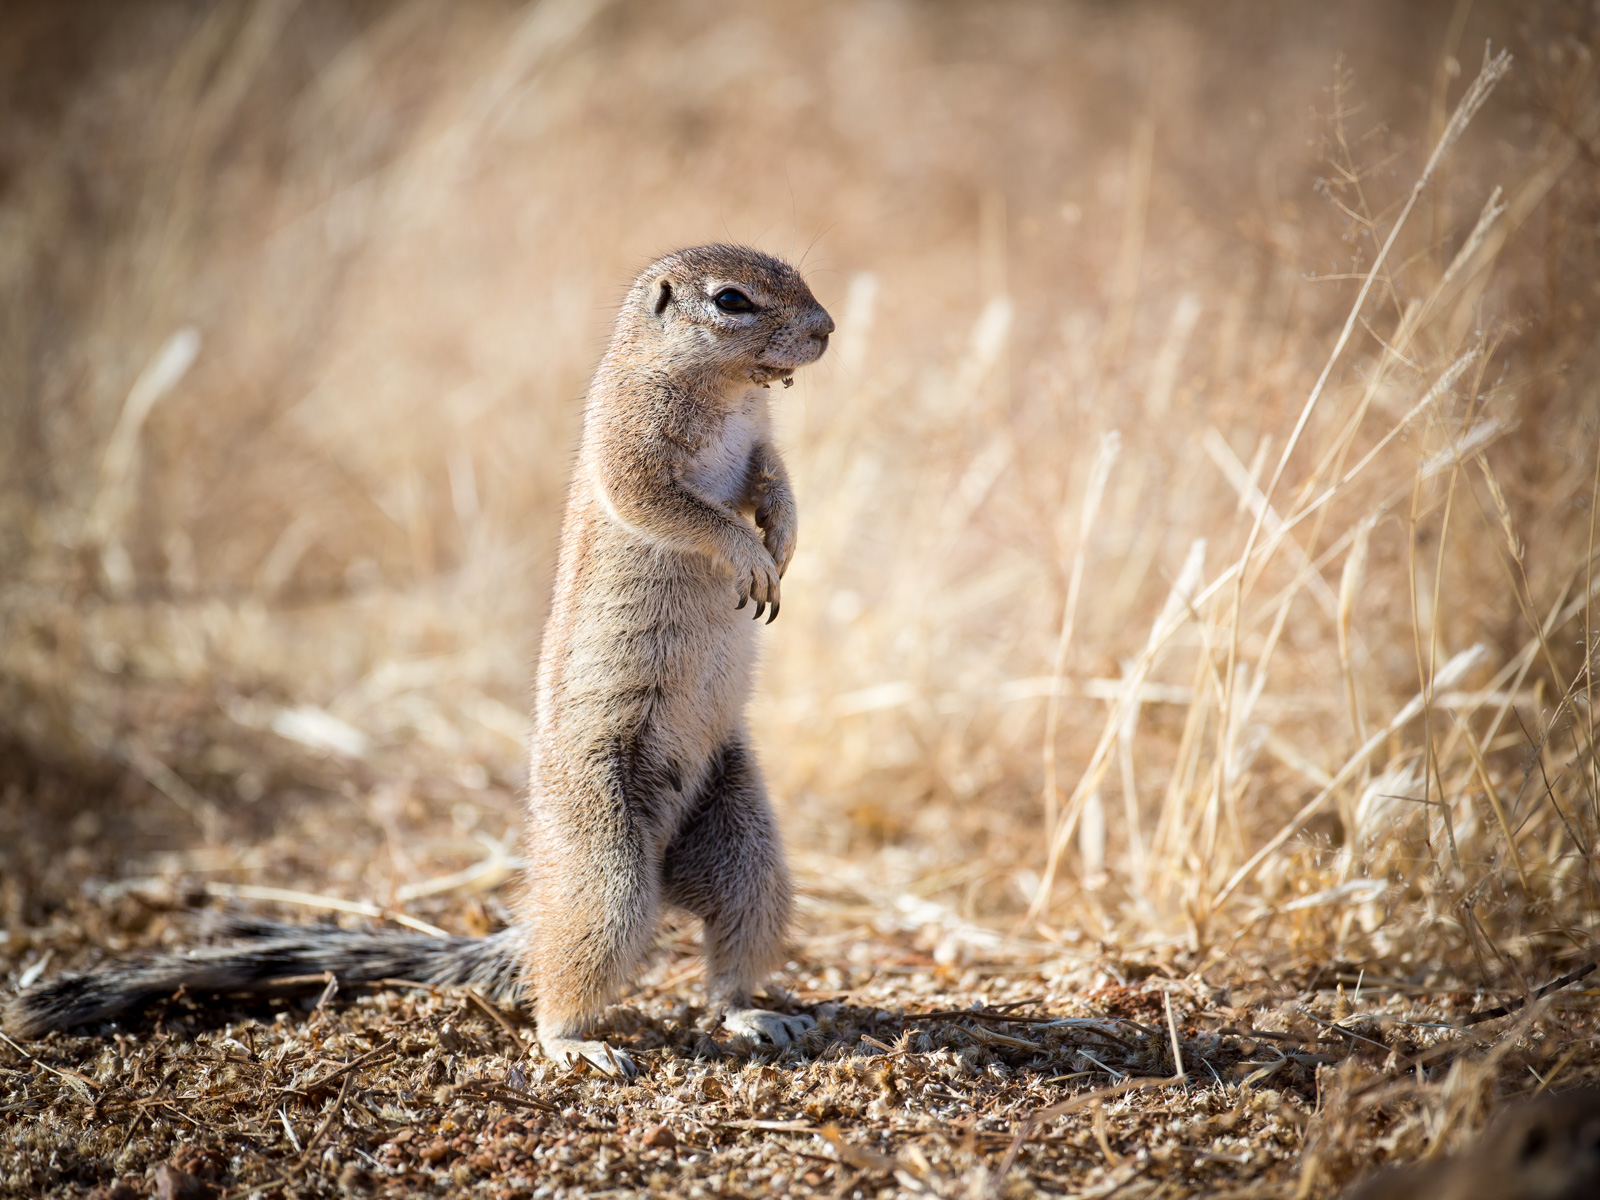 Ground Squirrel (Namibia): Canon 5D mkiii, 500mm F4 @f4.0, 1/2000, ISO250